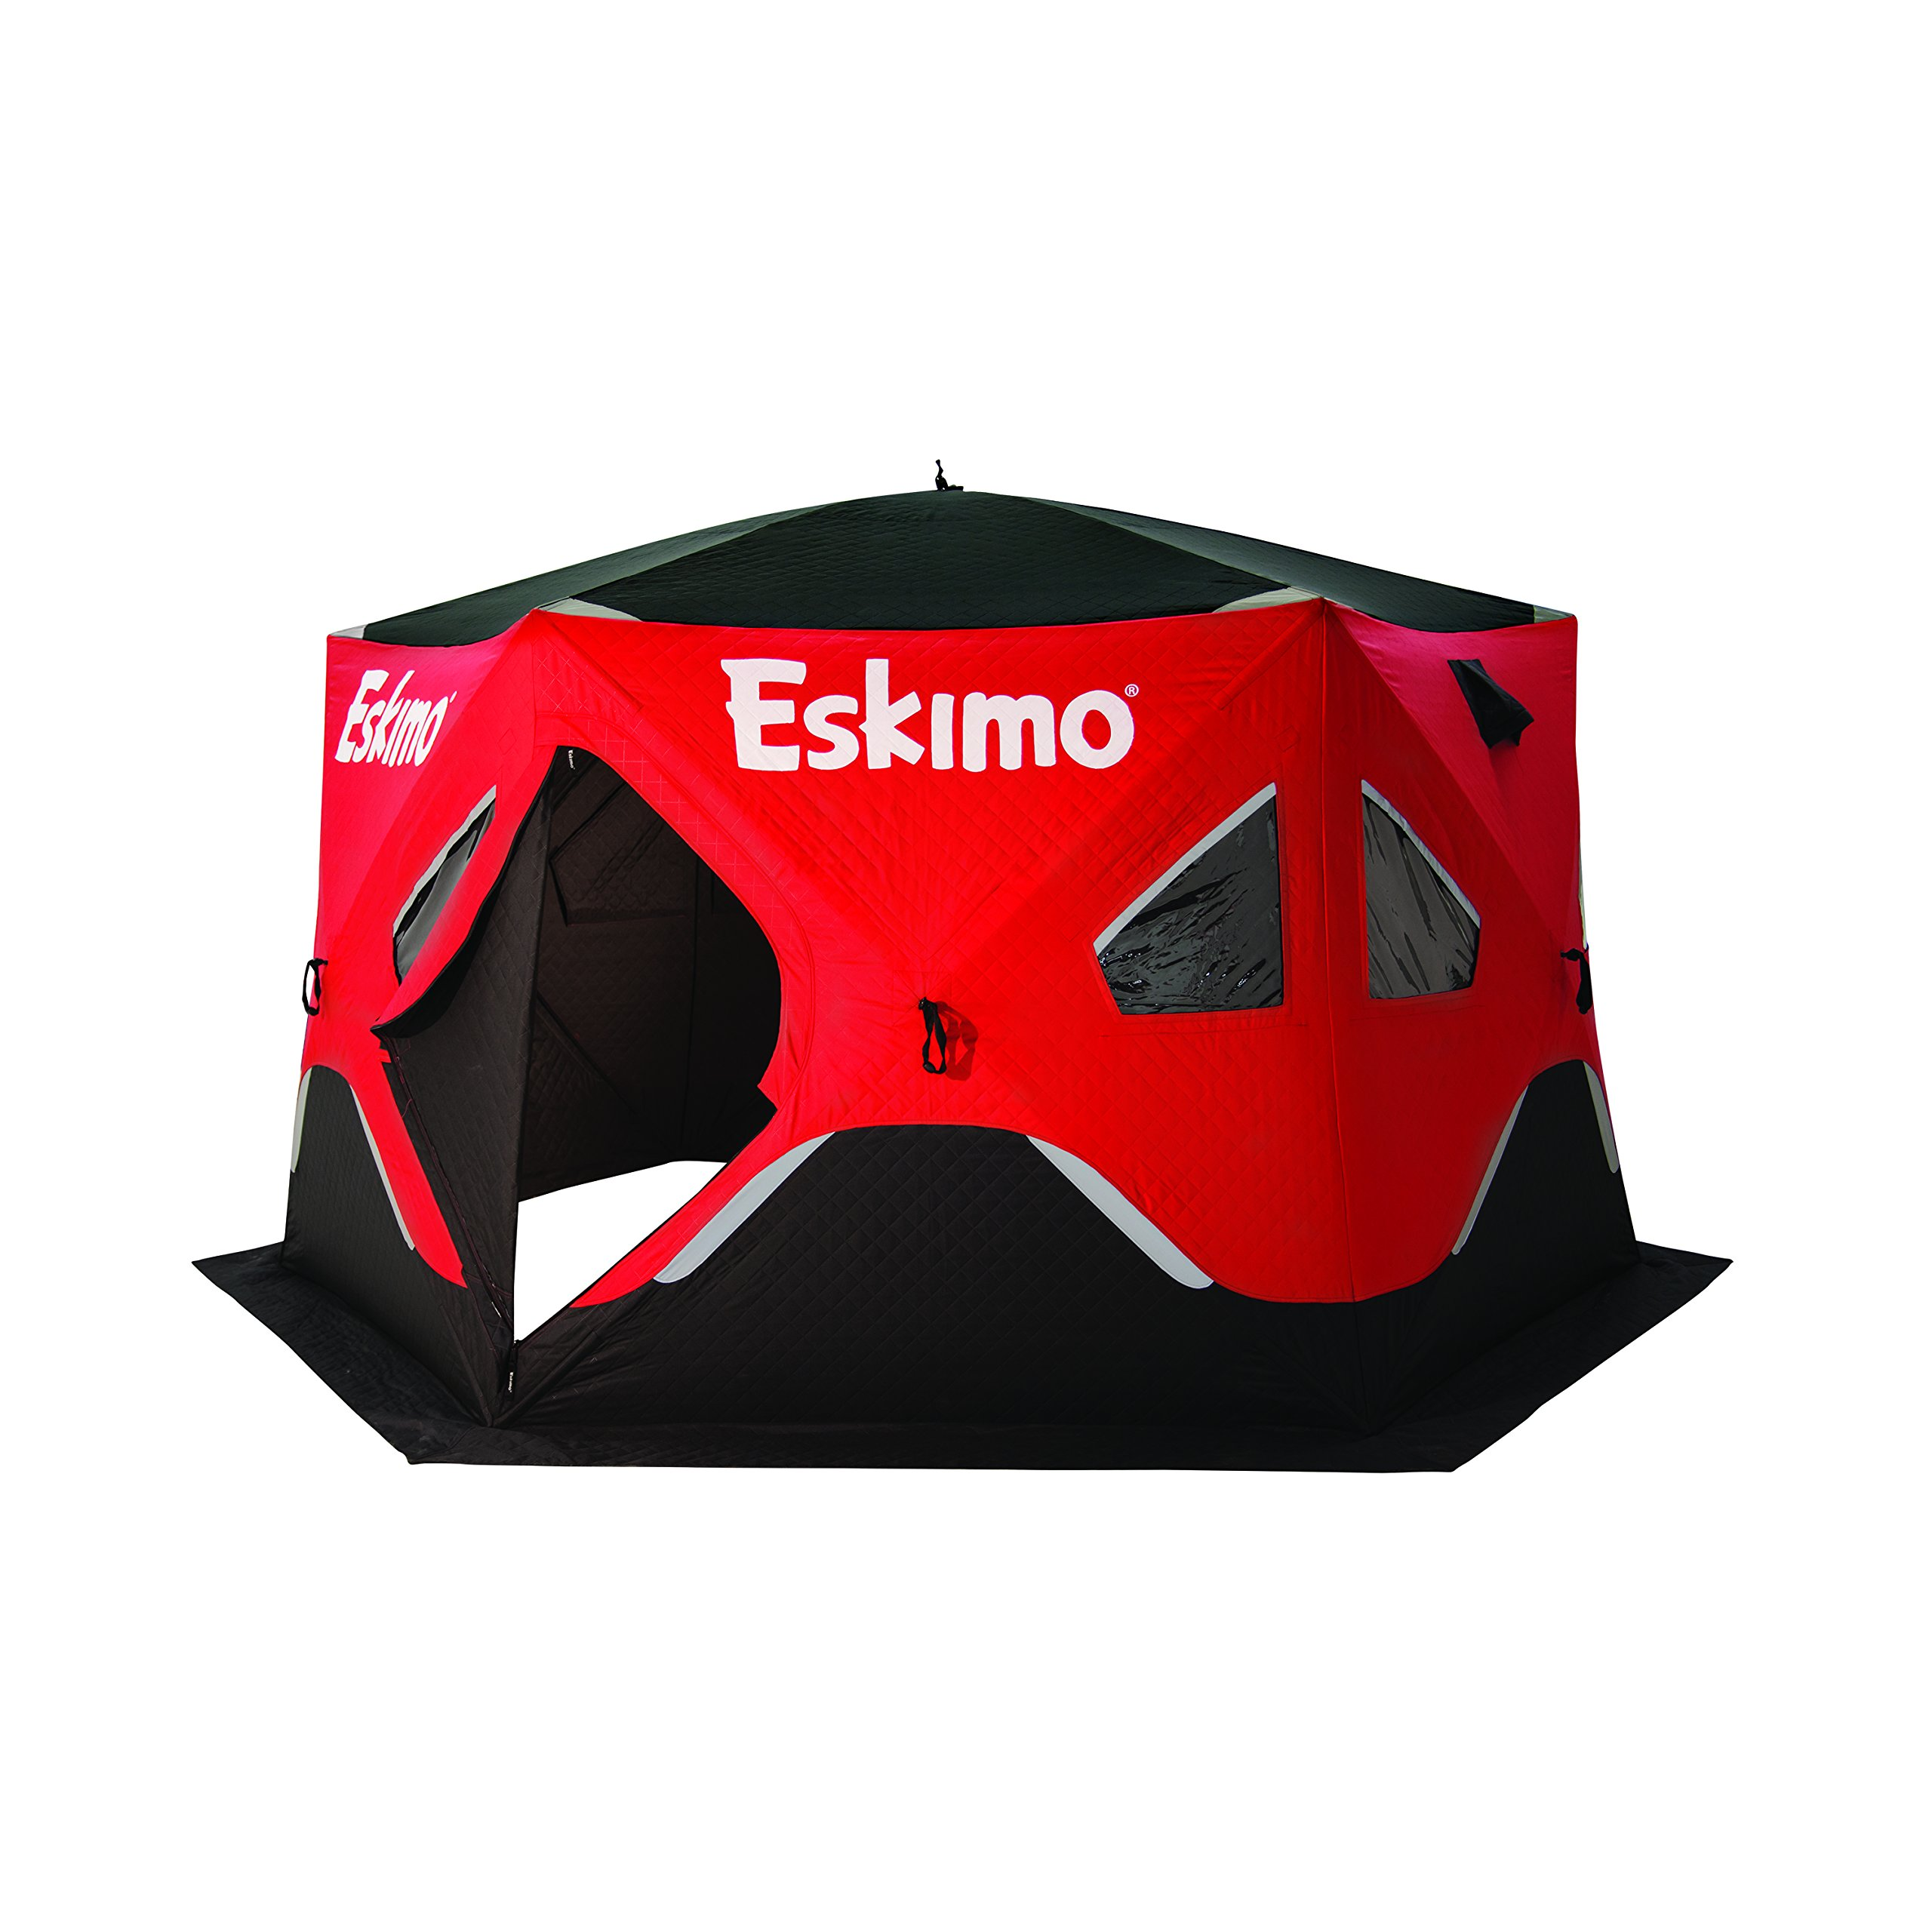 Eskimo FF6120I FatFish Insulated Pop-up Portable 6-Sided Ice Shelter, 5-7 Person by Eskimo